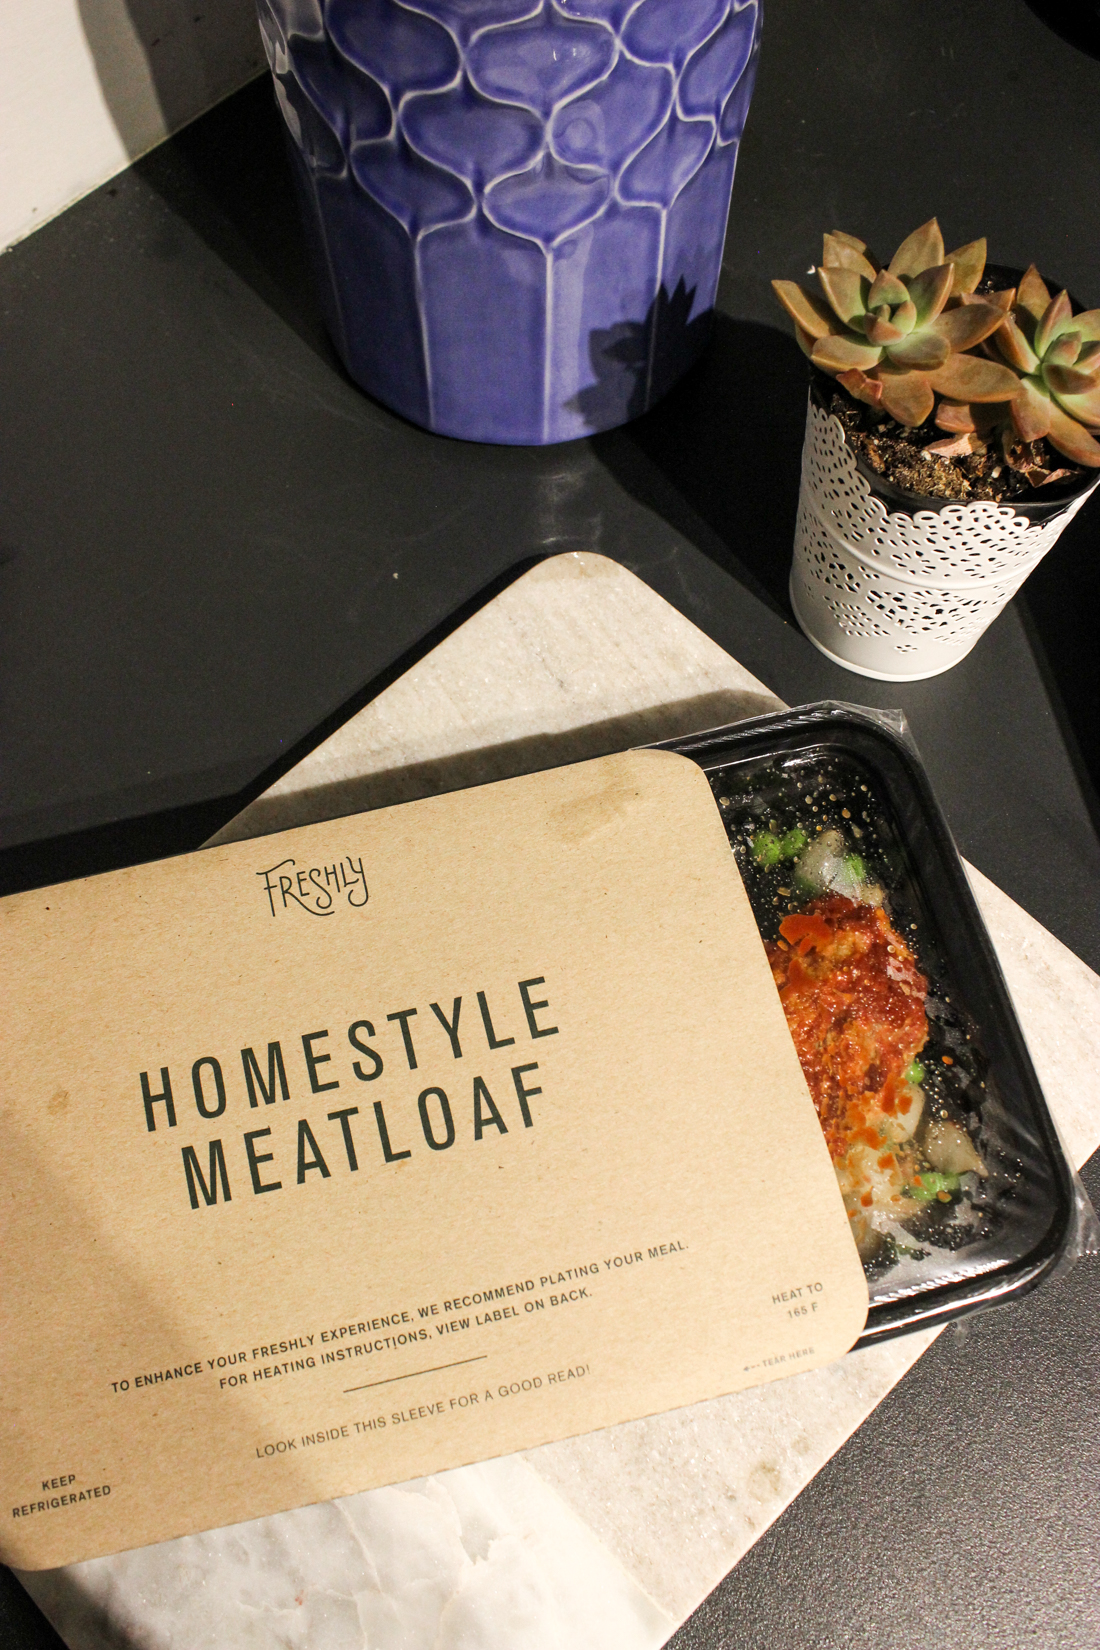 Freshly Meal Service Review | Just Peachy Blog